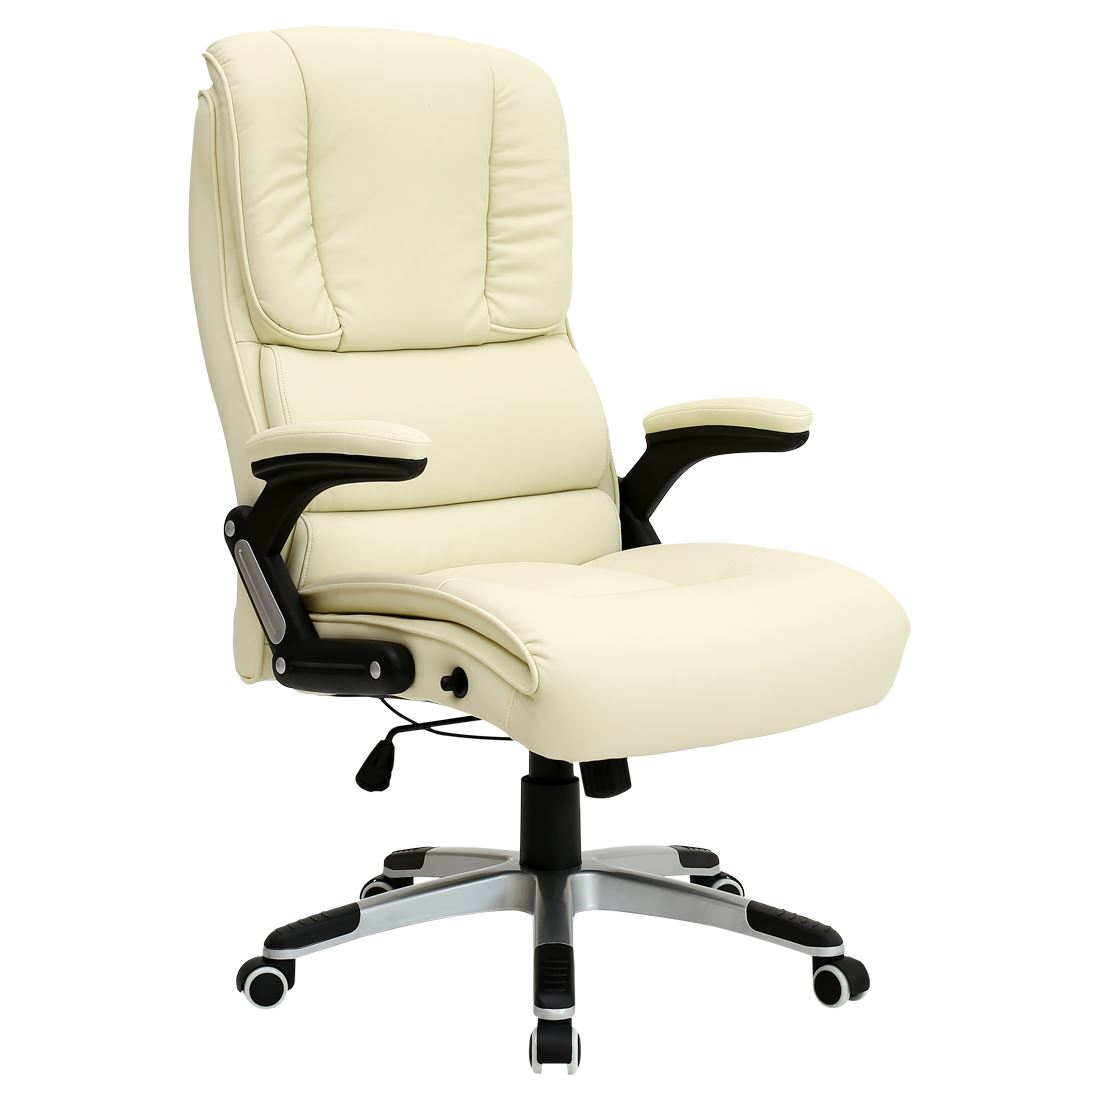 gaming chair ebay mink crushed velvet covers santiago super comfortable faux leather office swivel